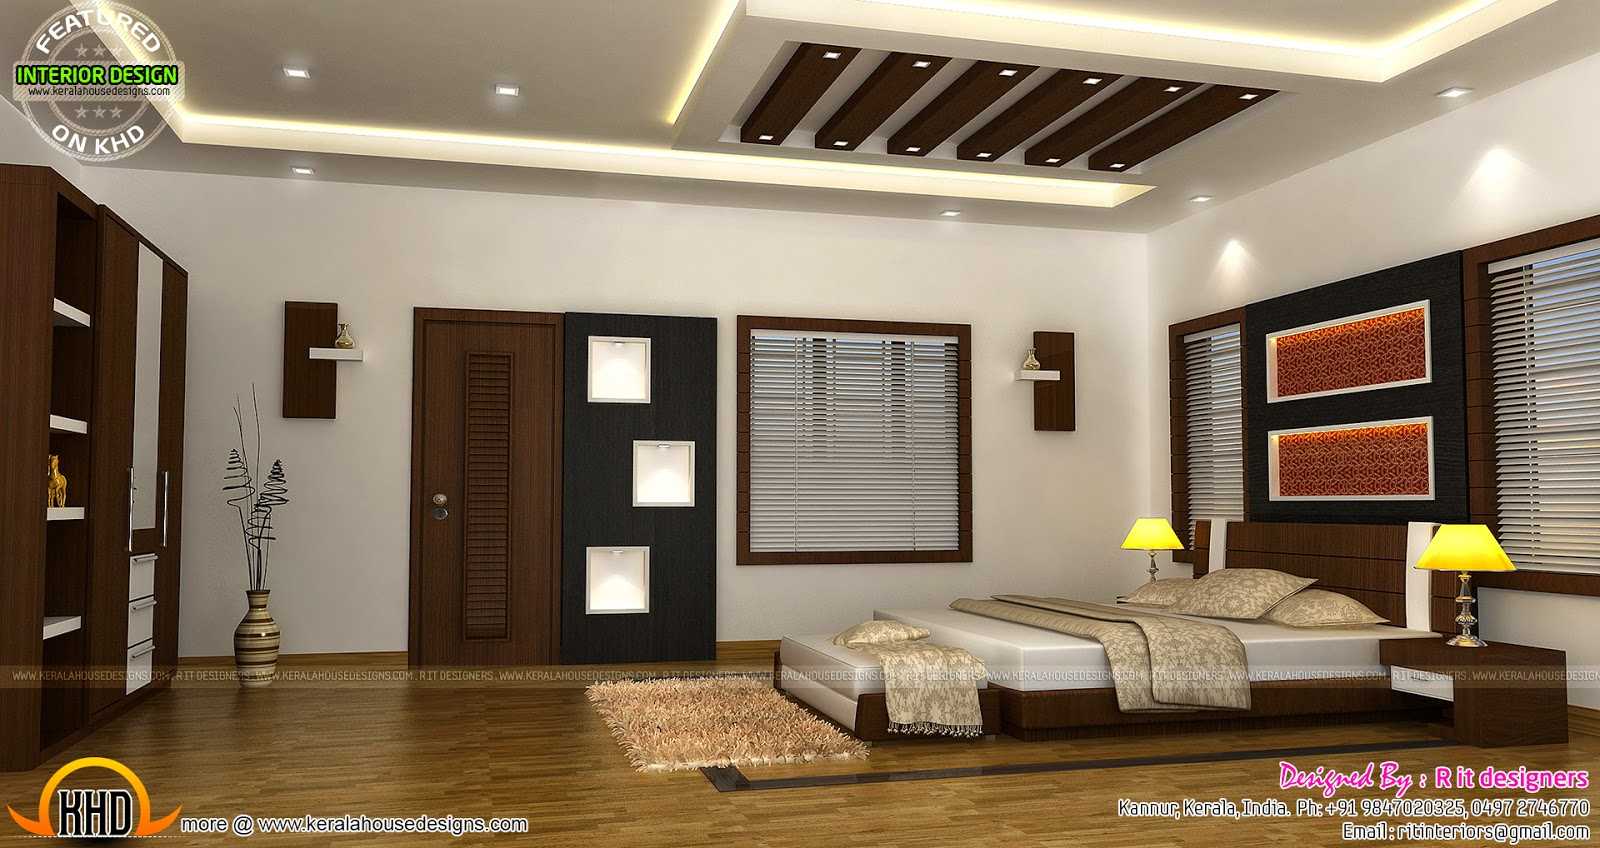 Bedroom Interior Design With Cost Kerala Home Design Bloglovin